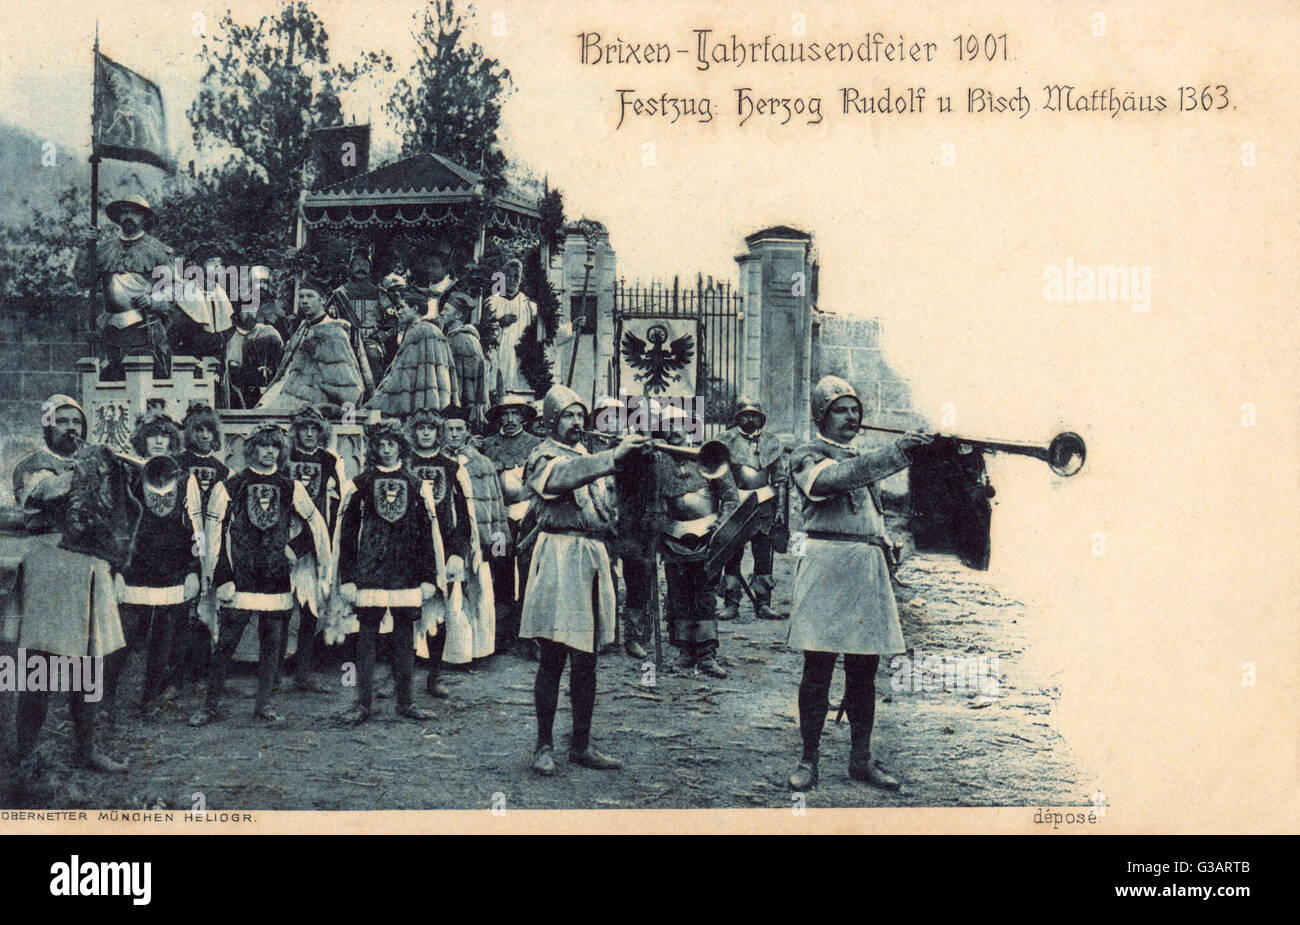 Brixen Thousand Year Festival, Tyrol, Austria, showing a scene relating to Duke Rudolf and Bishop Matthaus in 1363. Stock Photo